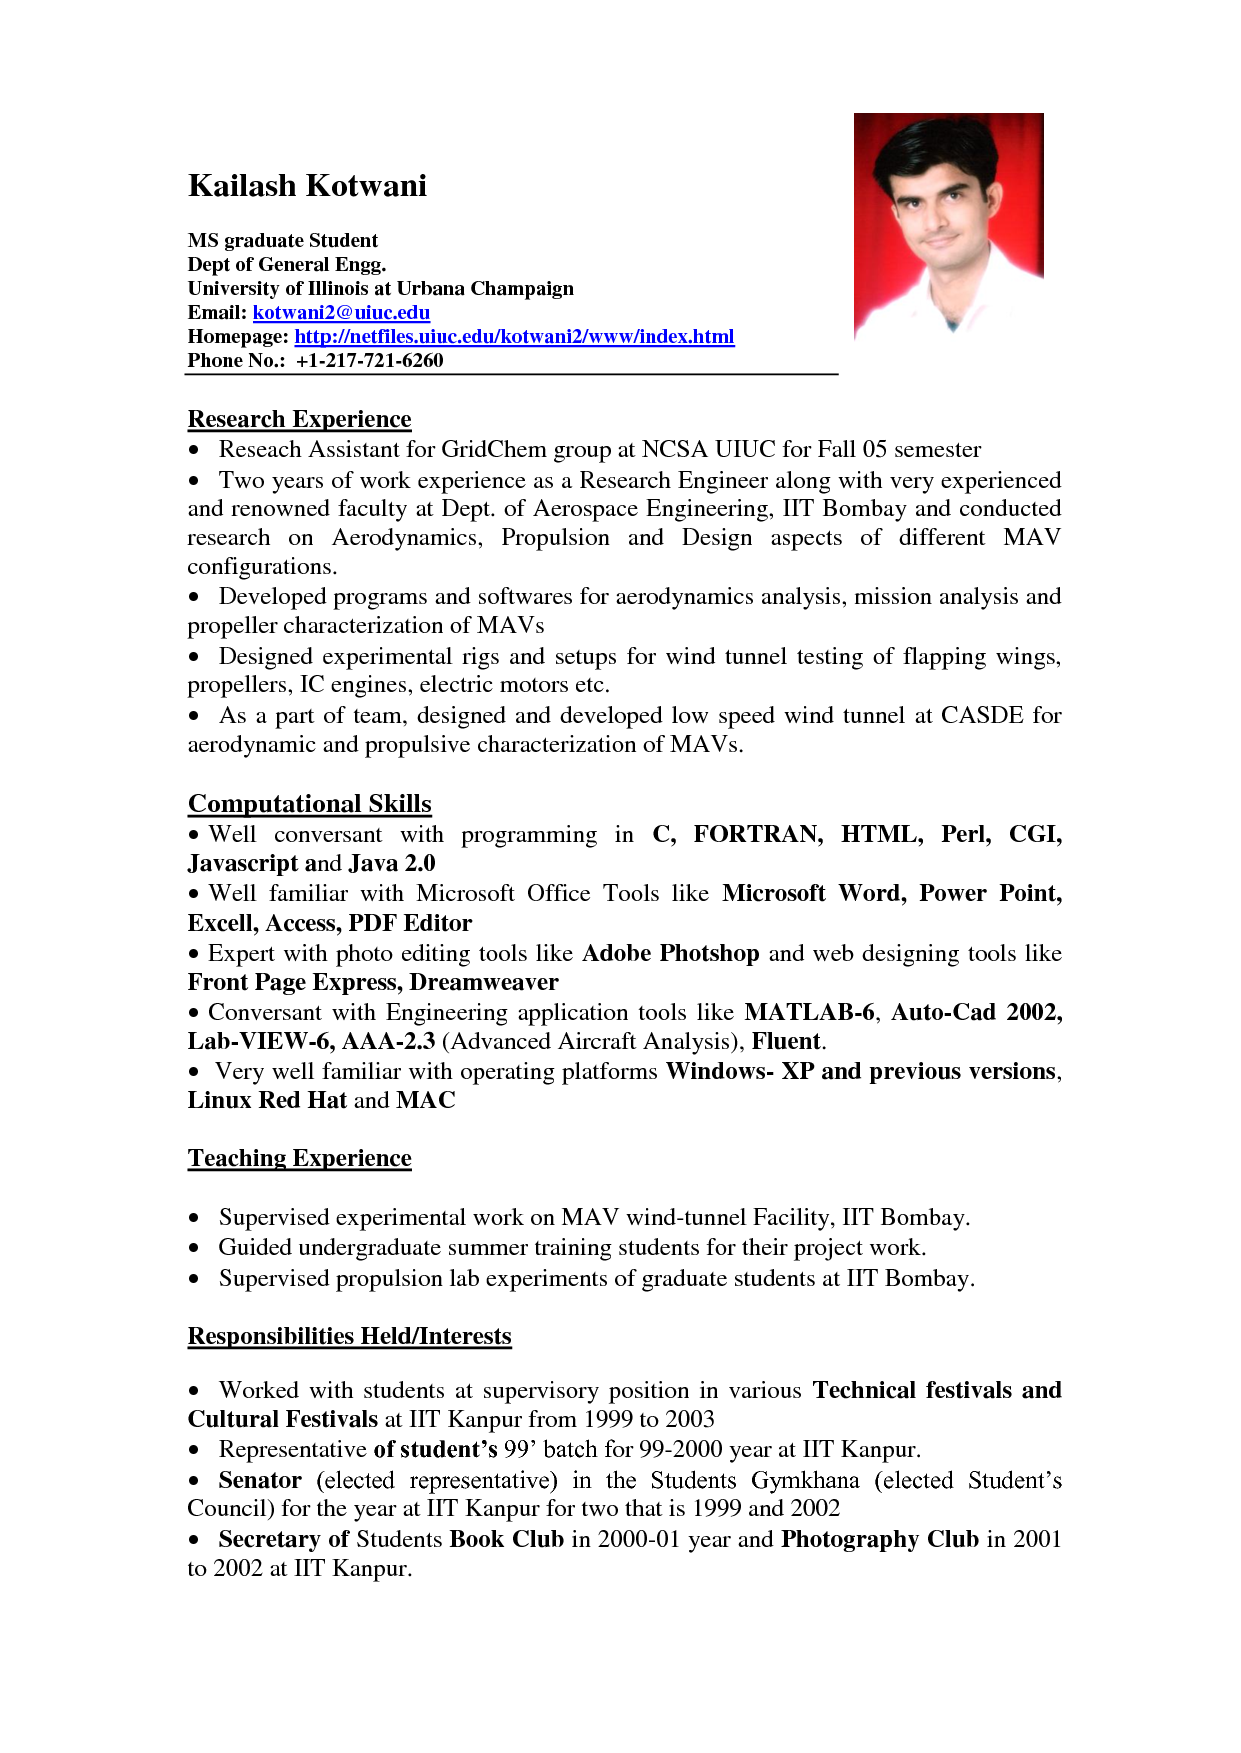 Perfect High School Student Resume Examples No Work Experience No Work Experience  Resume Content. How To Write A Resume Resume .  Resume For High School Graduate With No Work Experience